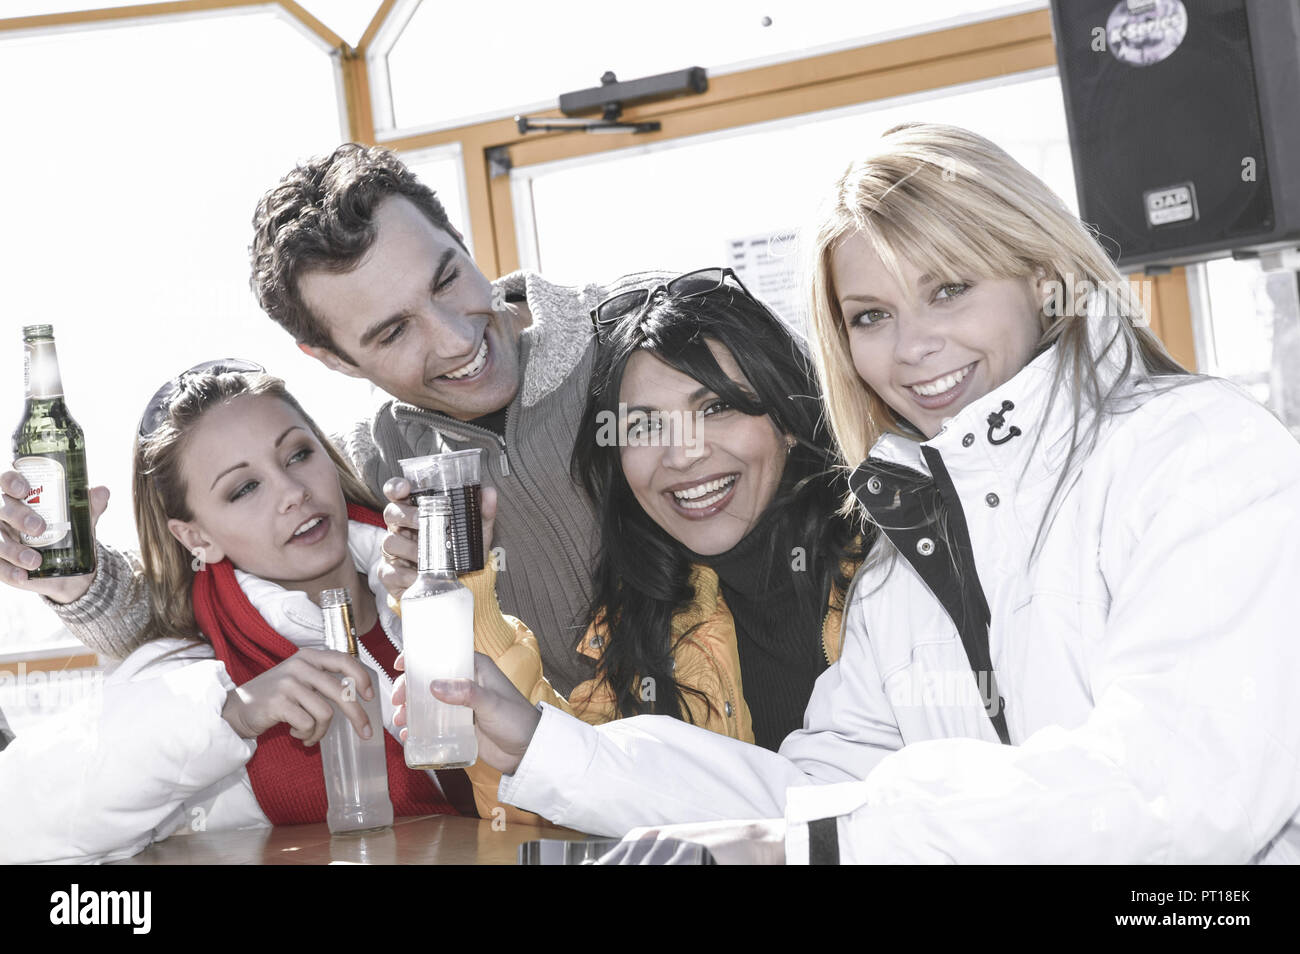 young people at apres ski in winter holiday (model-released) - Stock Image